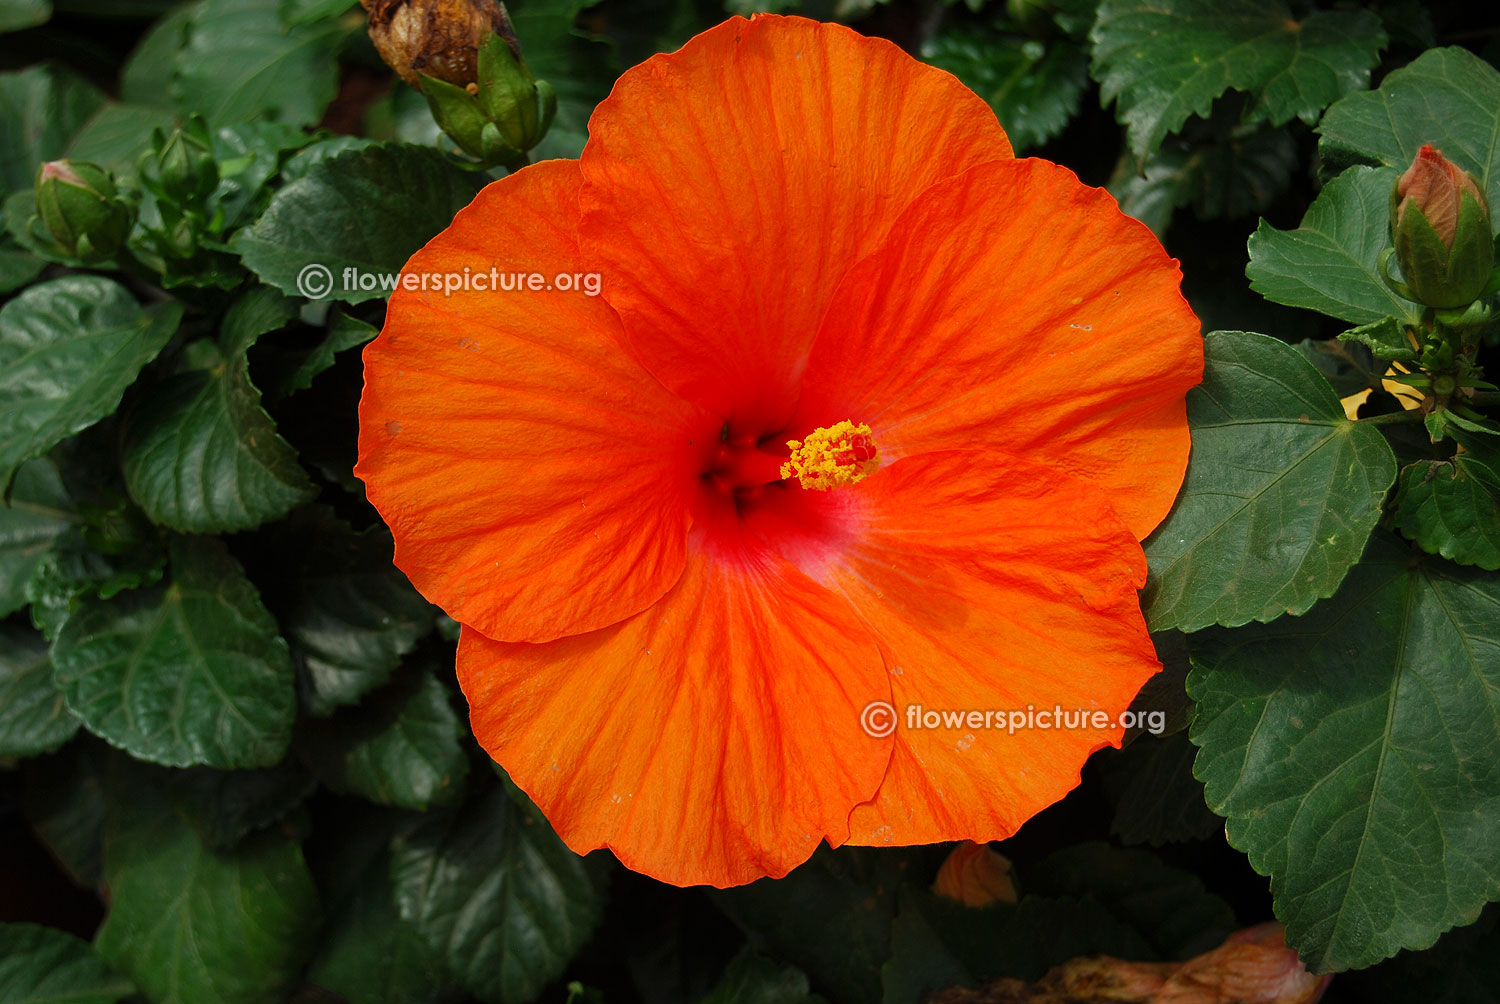 hibiscus flower varieties, Natural flower